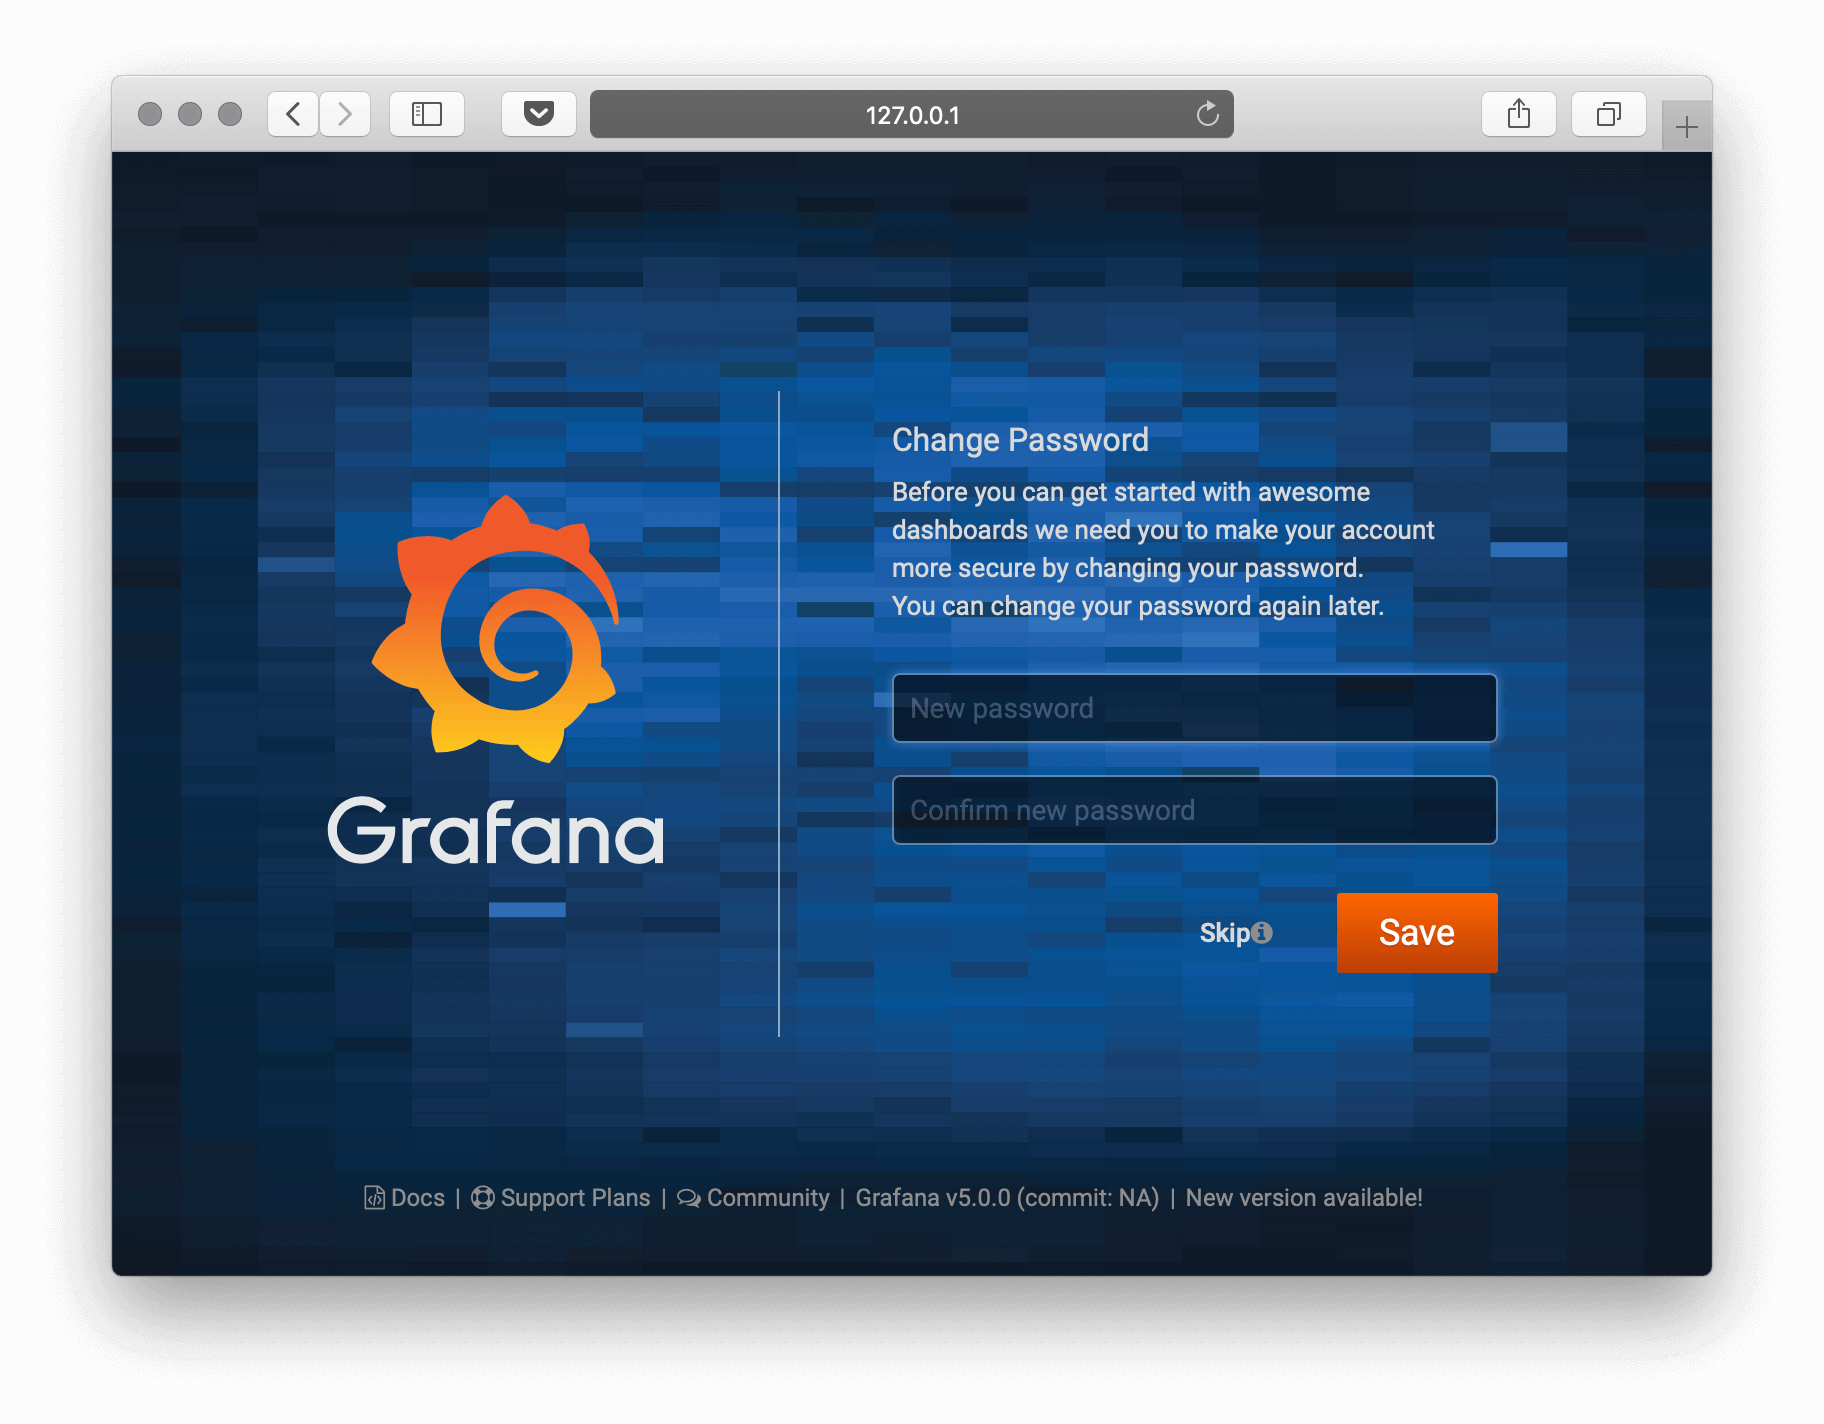 Grafana on Unit - Setup Screen